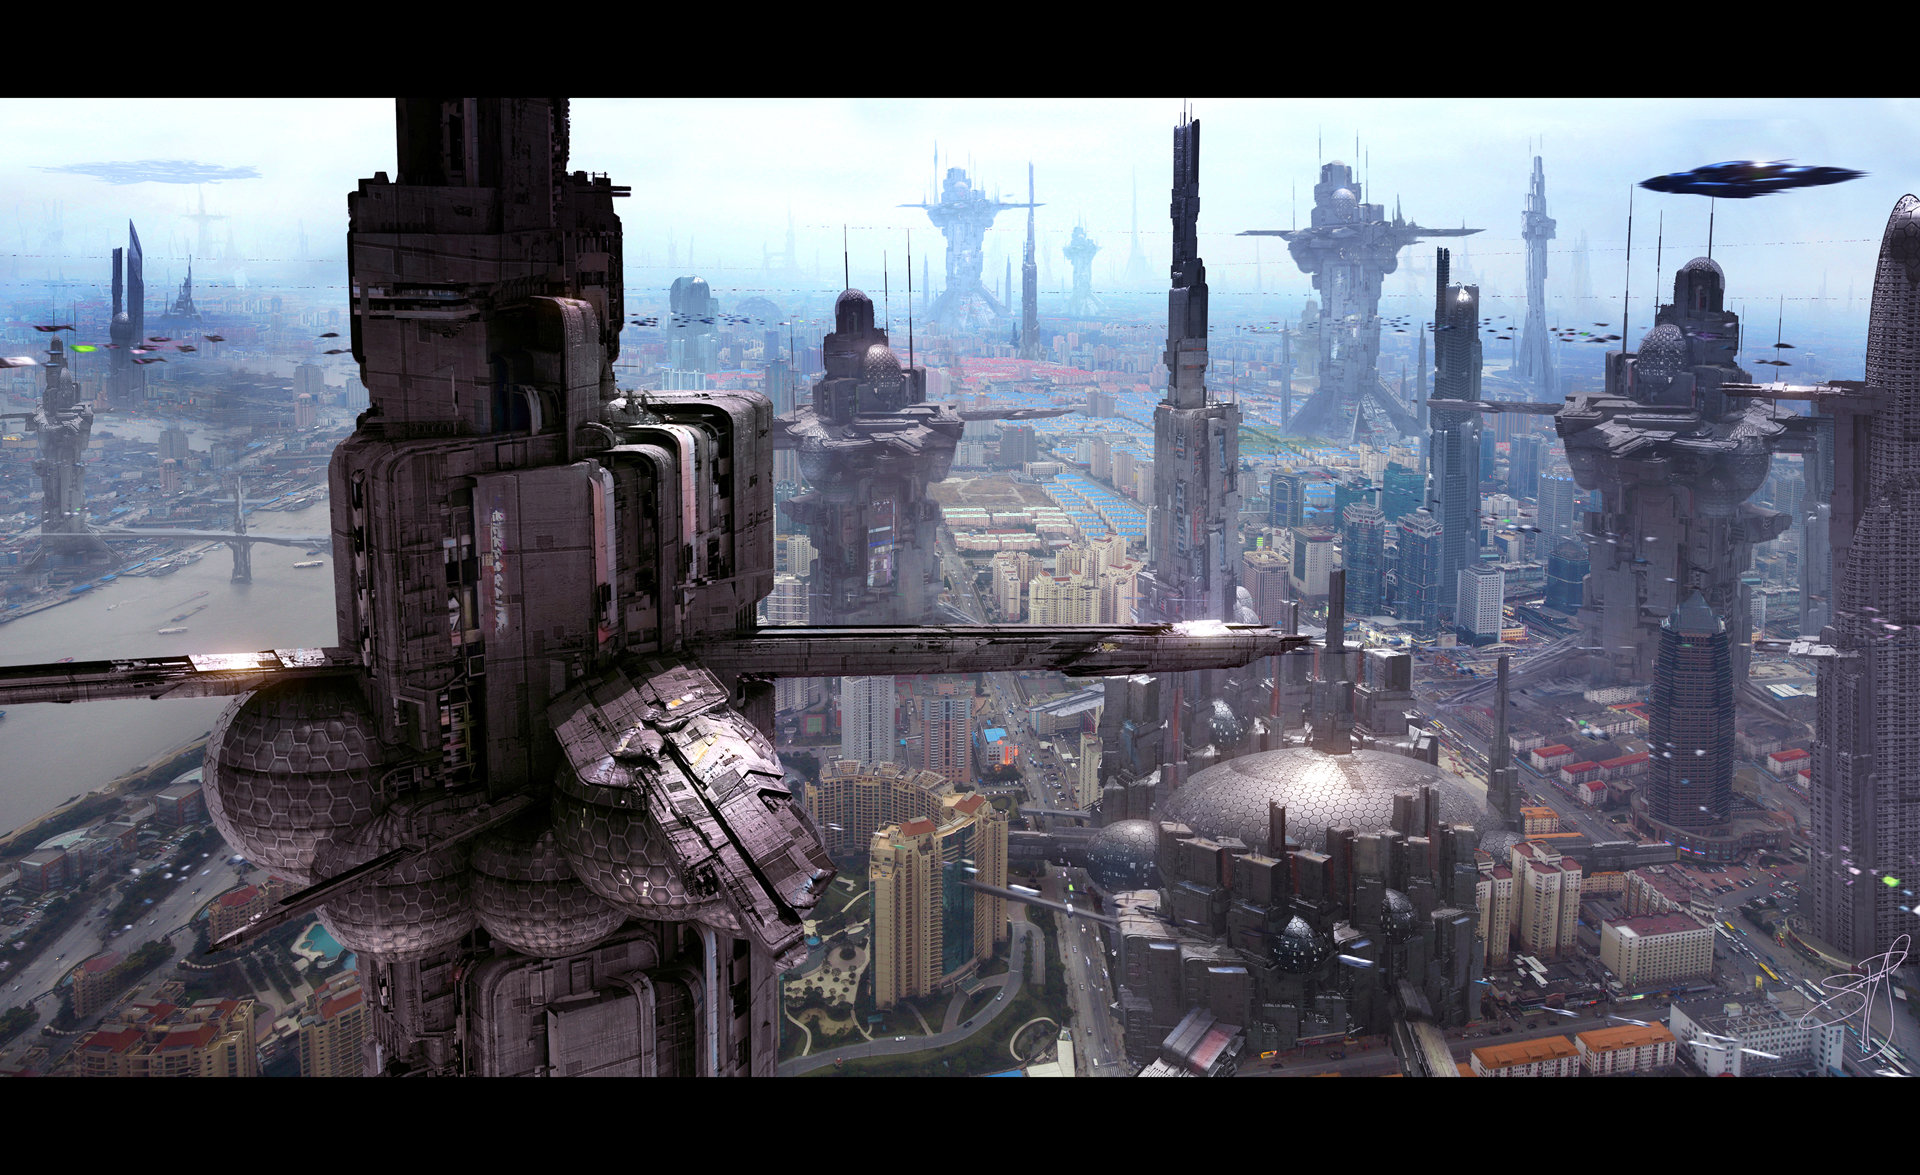 Scott richard futuristic city 6 by scott richard by rich35211 d6ver5g